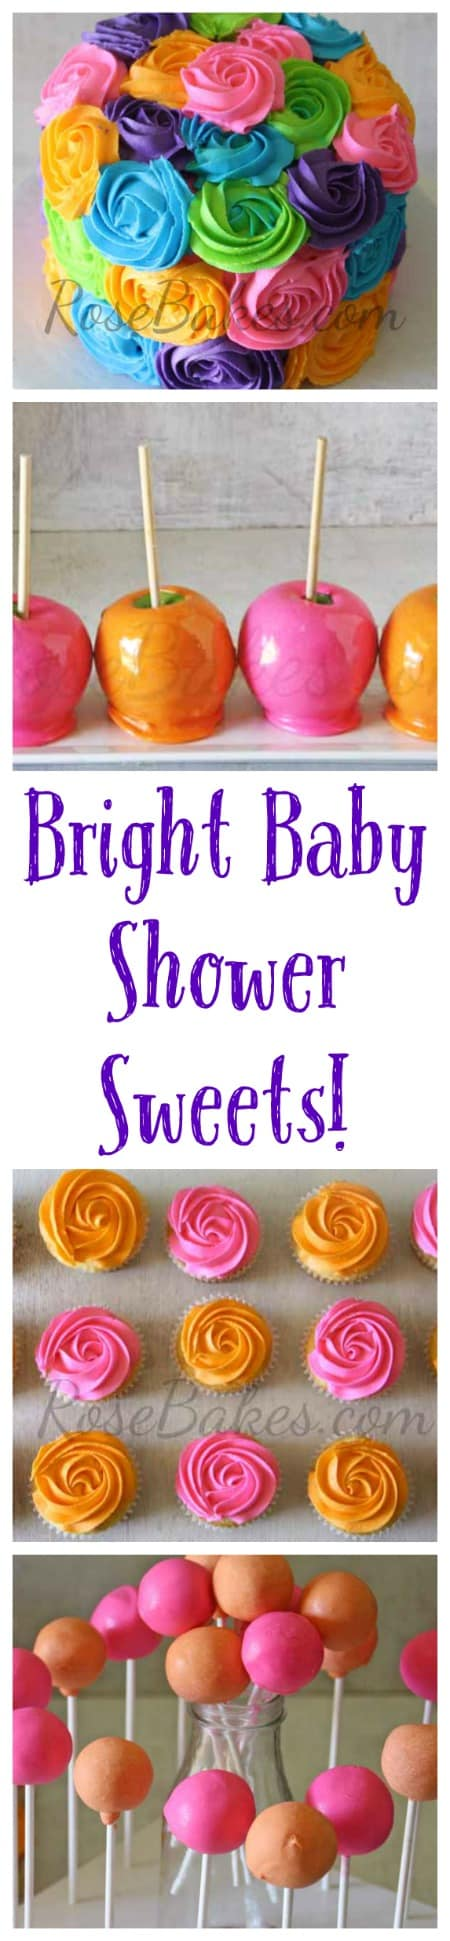 Bright Baby Shower Sweets